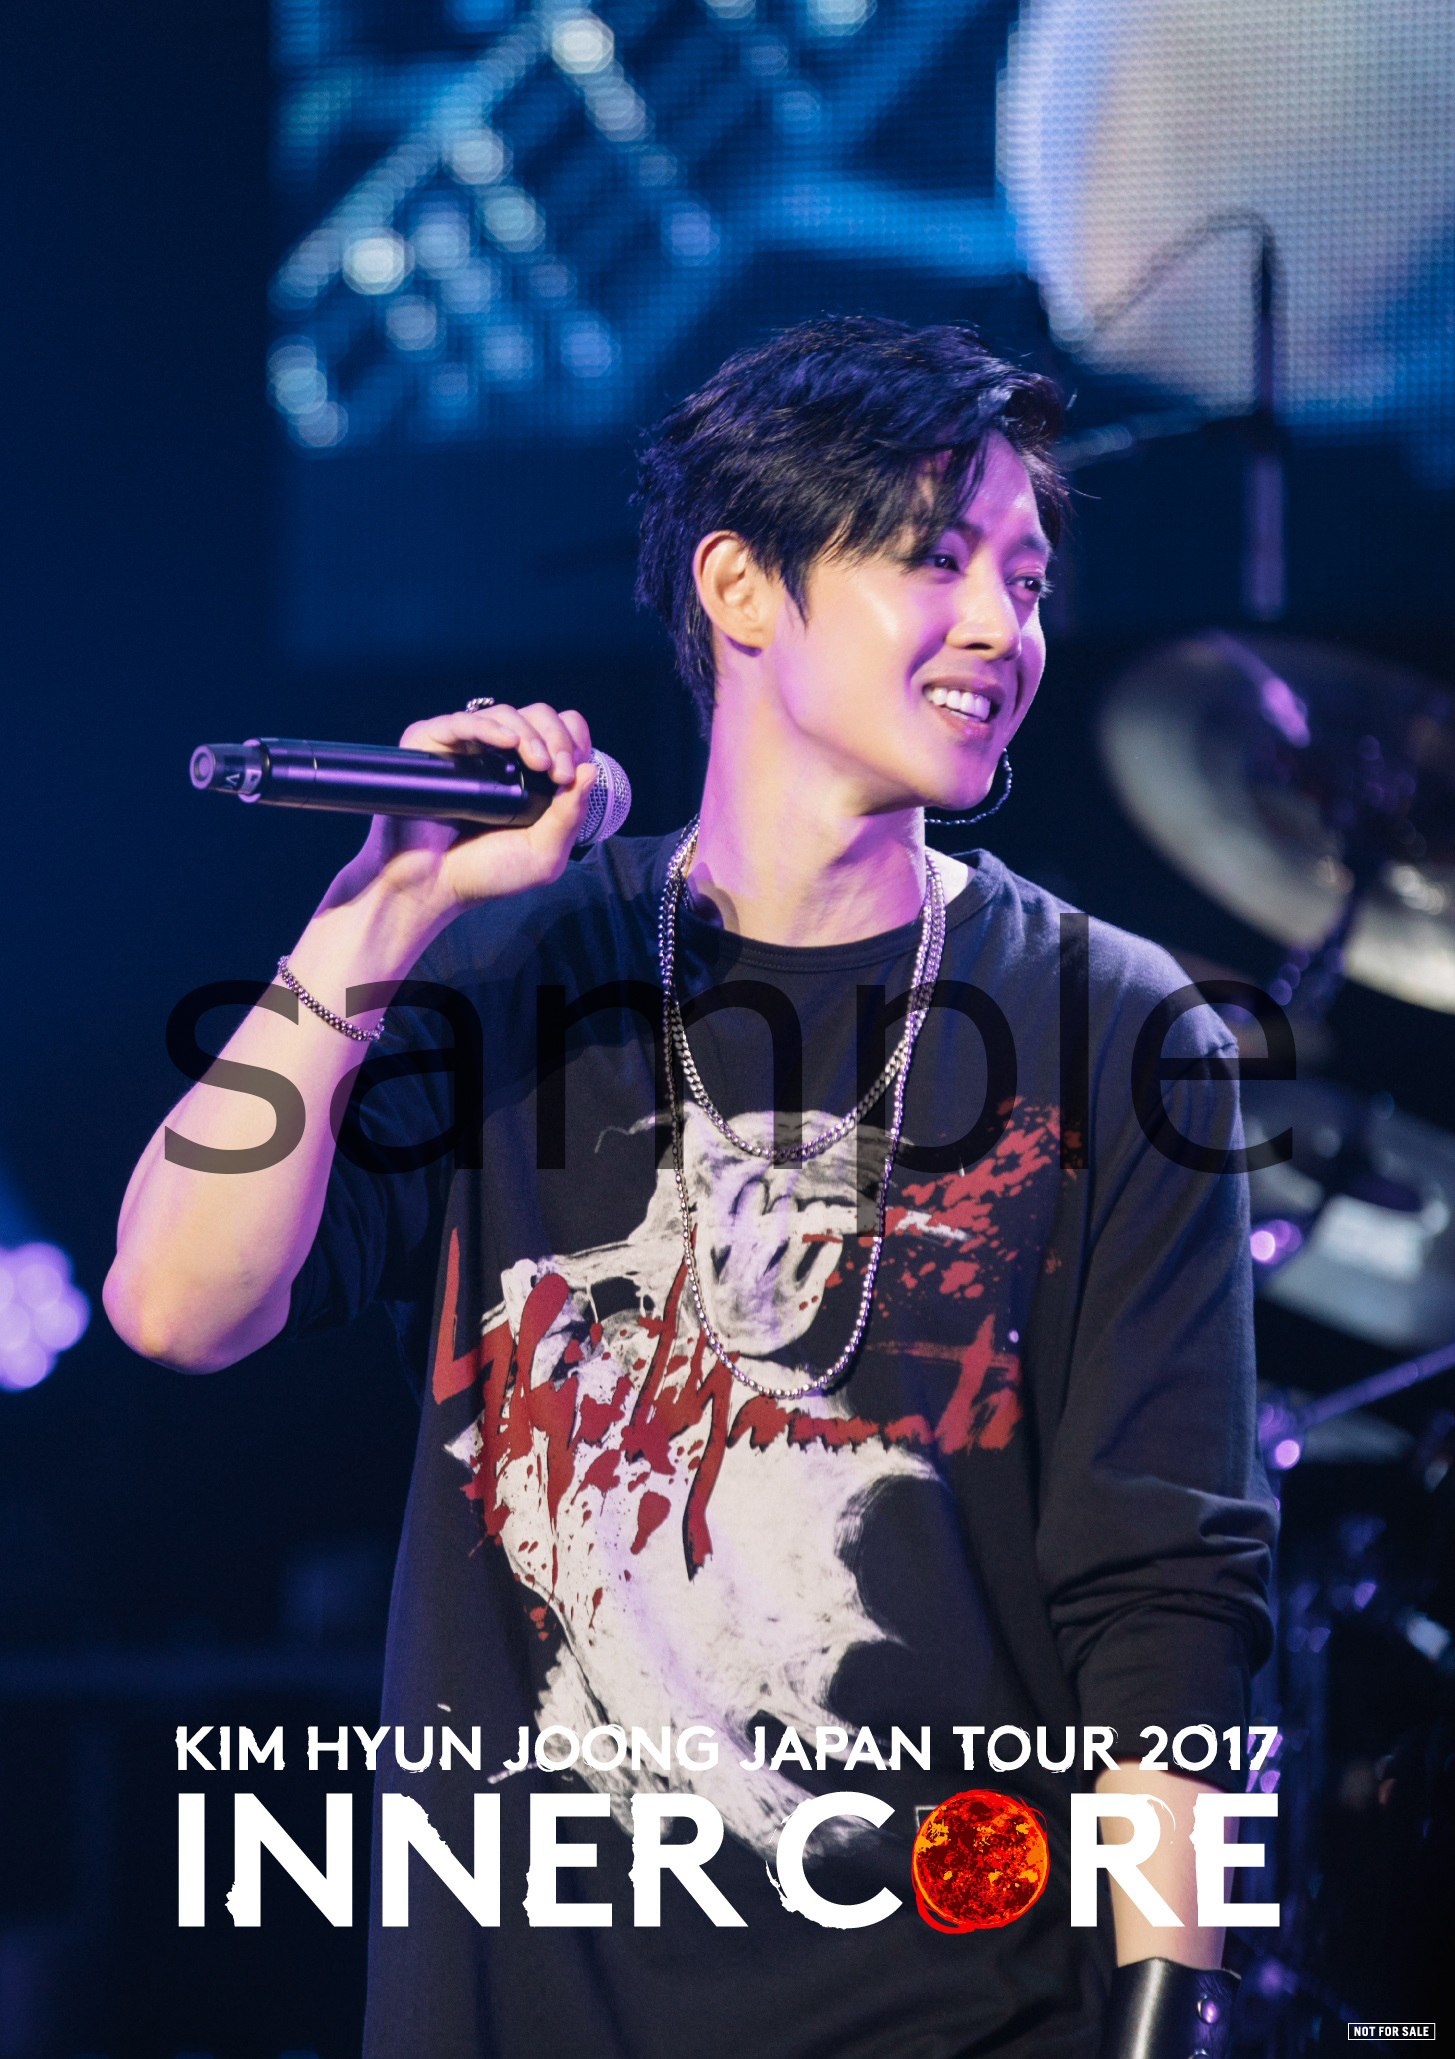 Universal Music Japan Update - Release of 12.20 Kim Hyun Joong Japan Tour 2017 Inner Core DVD and Blu-ray, Pictures of purchaser benefits released! 2017.11.27